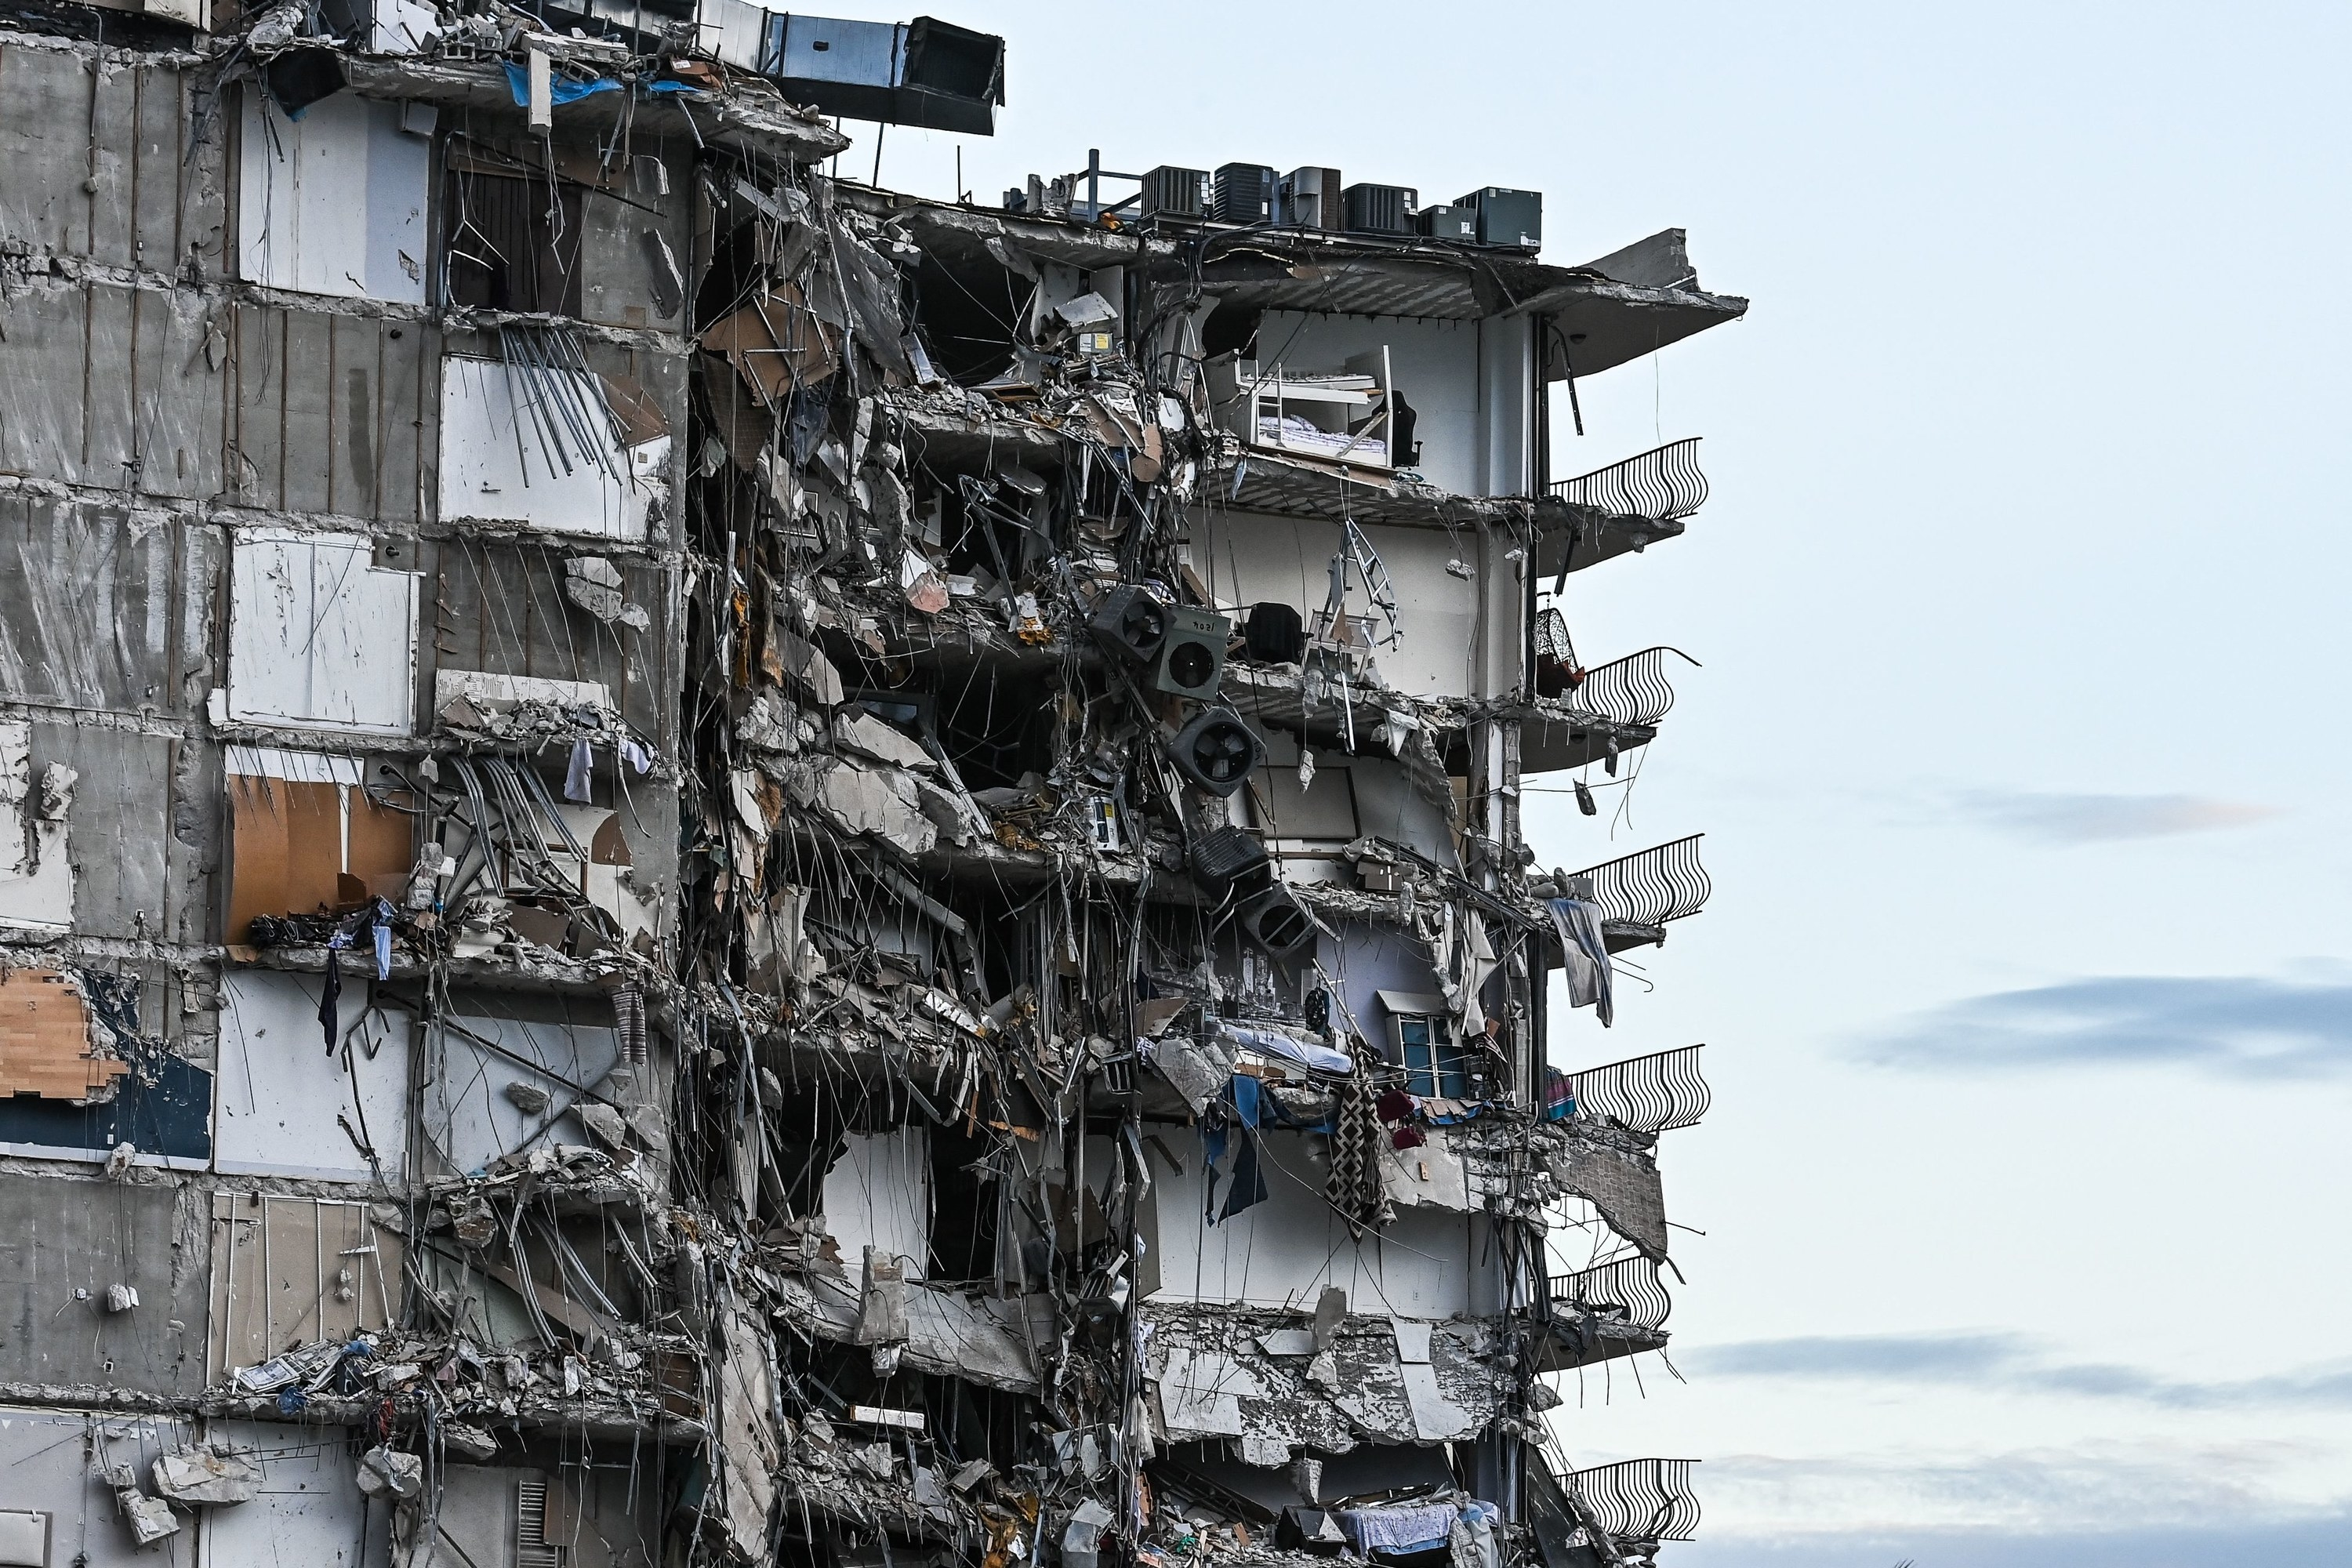 Six stories of a partially collapsed building with the inside visible and balconies hanging off the side